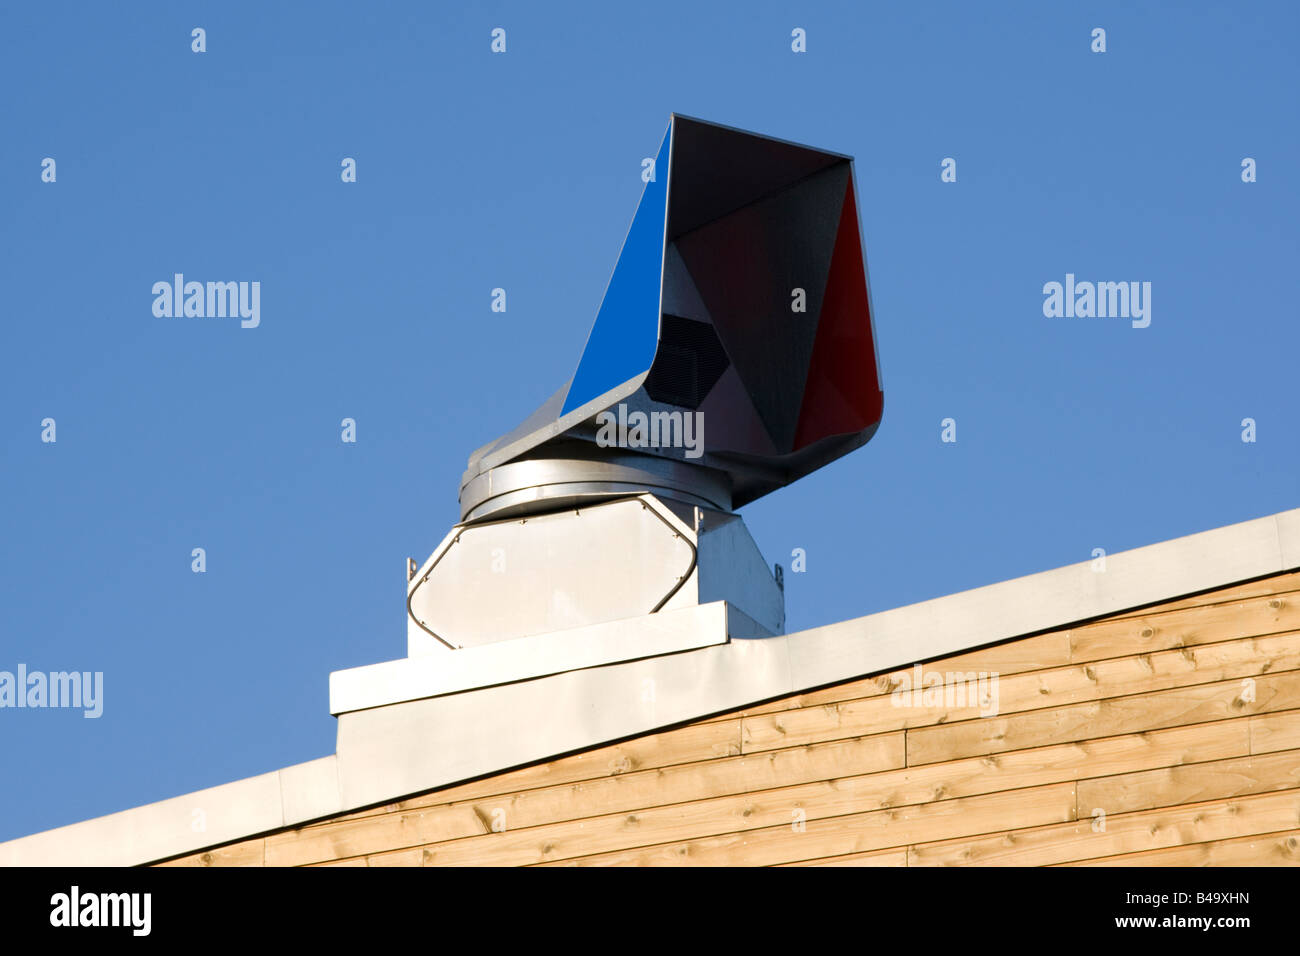 Wind cowl passive heat recovery ventilation Jubilee Harbour Penryn near Falmouth Cornwall UK - Stock Image